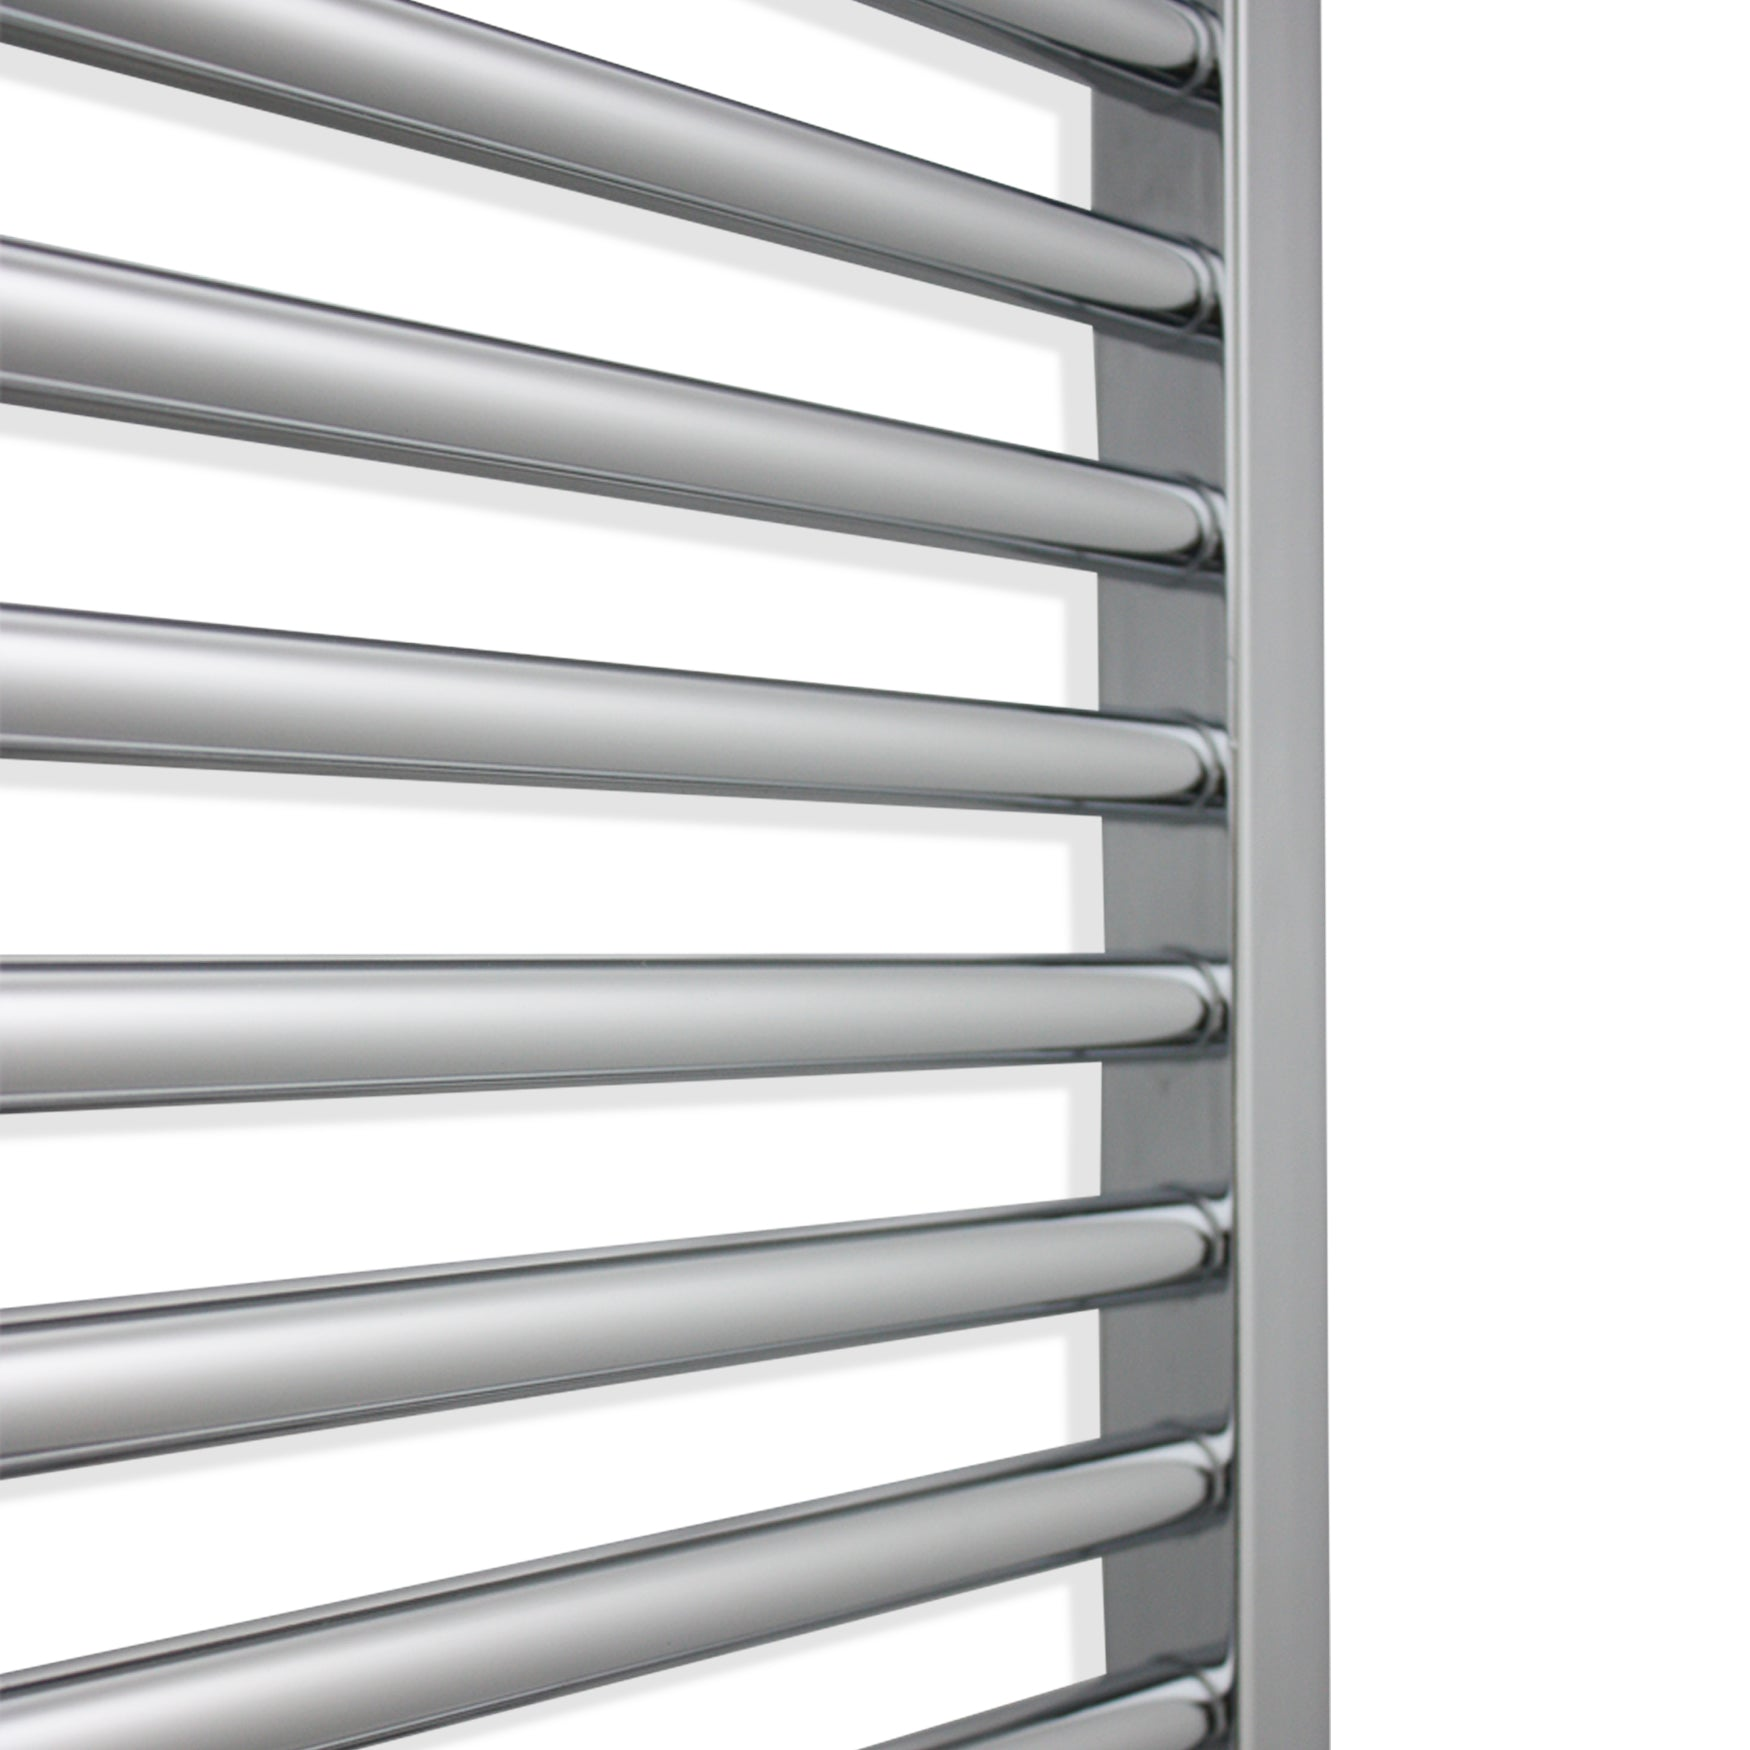 850mm Wide 1600mm High Flat Chrome Heated Towel Rail Radiator HTR